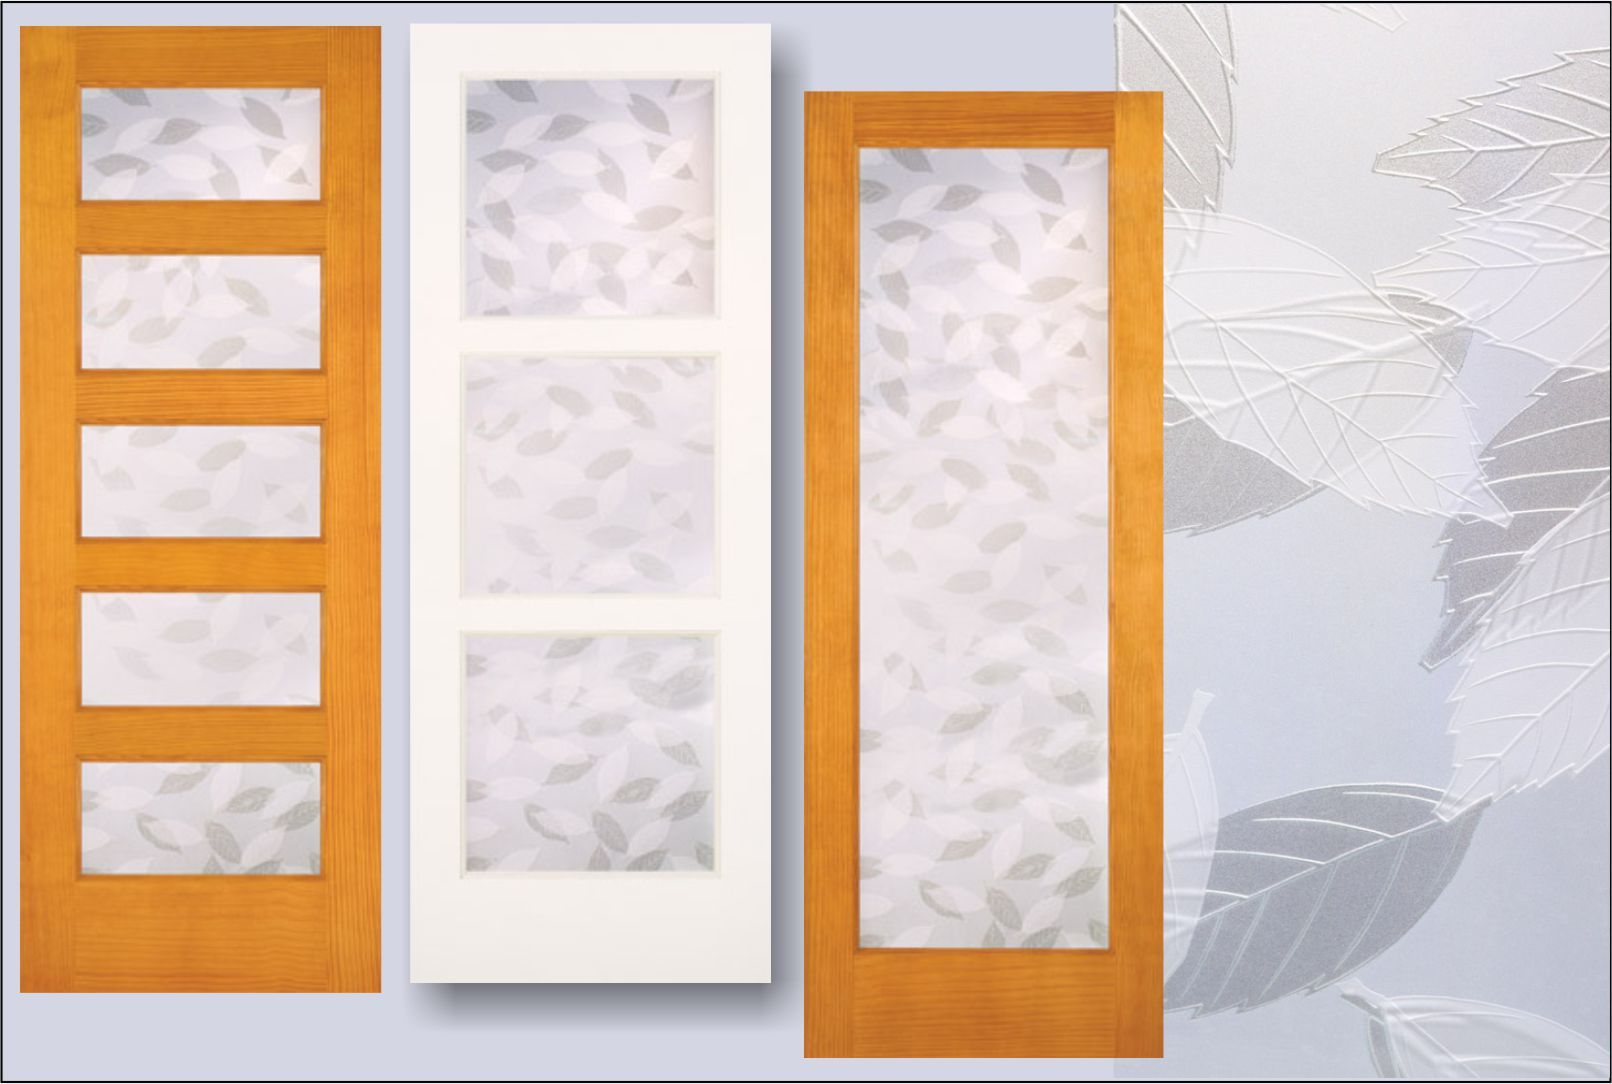 Incroyable Interior Doors With Leaf Design In The Glass. Used For Privacy Interior  Doors. Http://glassdoorstampa.com/interior Doors Tampa Pantry Office French  Doors/